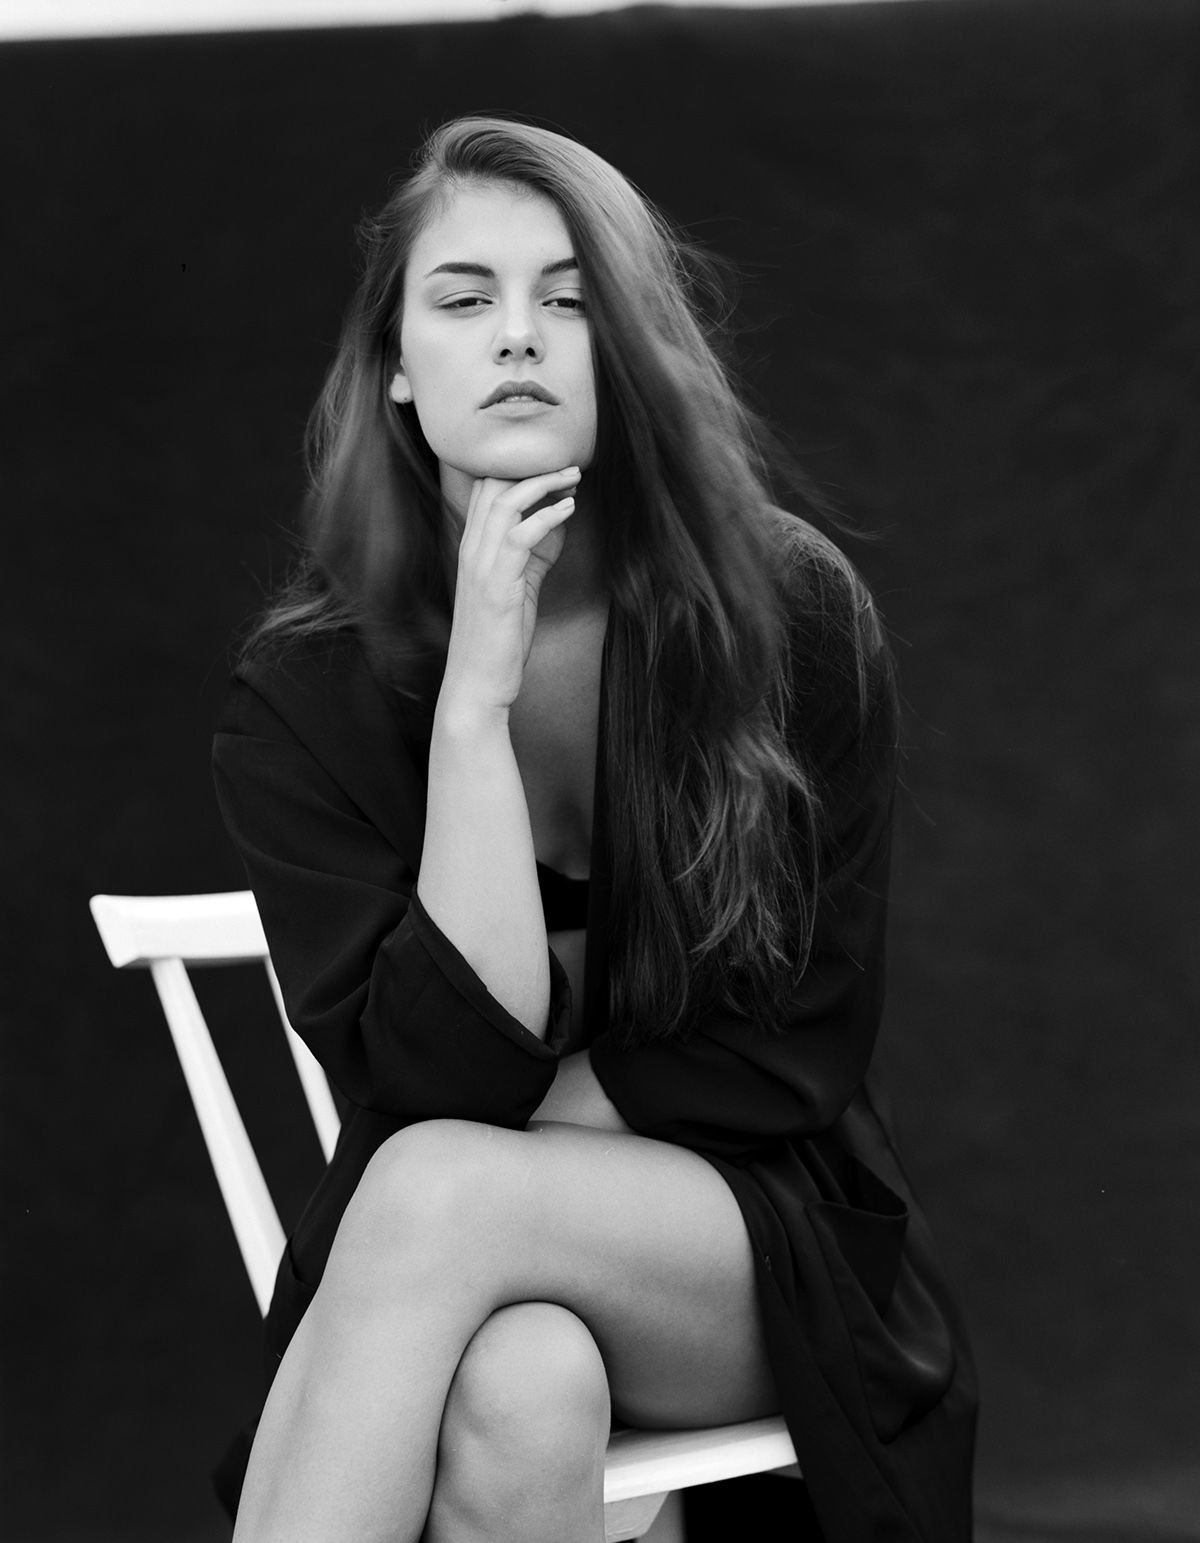 Janina for Sophie Giannoules clothing editorial on Behance